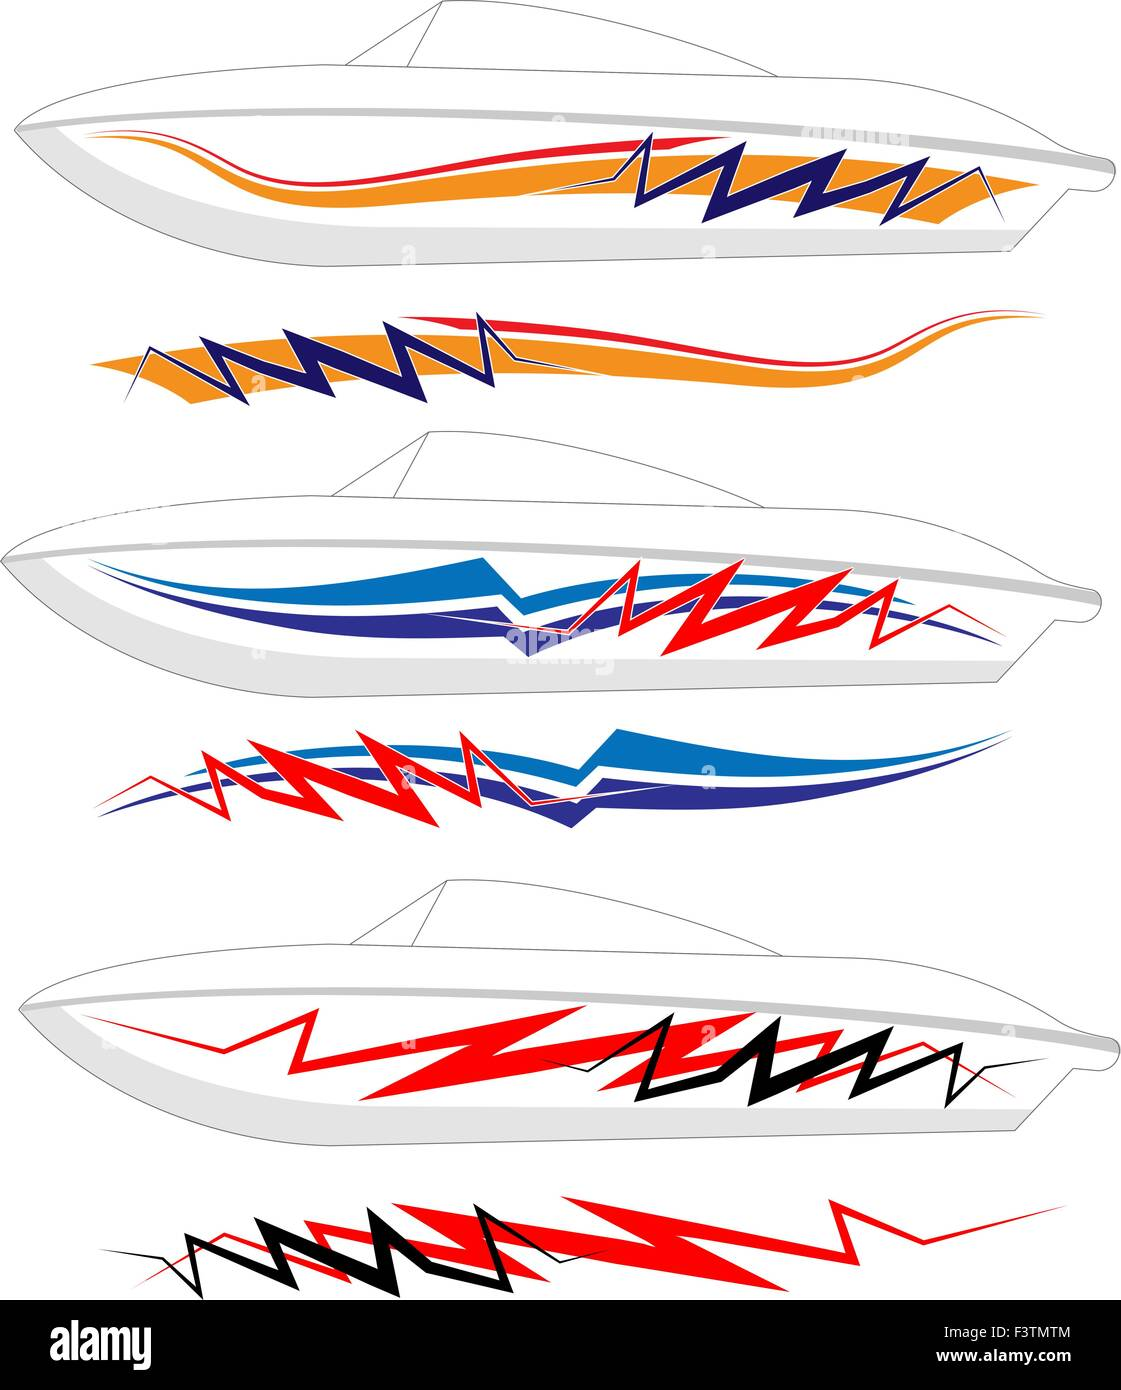 Boat Graphics, Stripe : Vinyl Ready Vector Art Stock